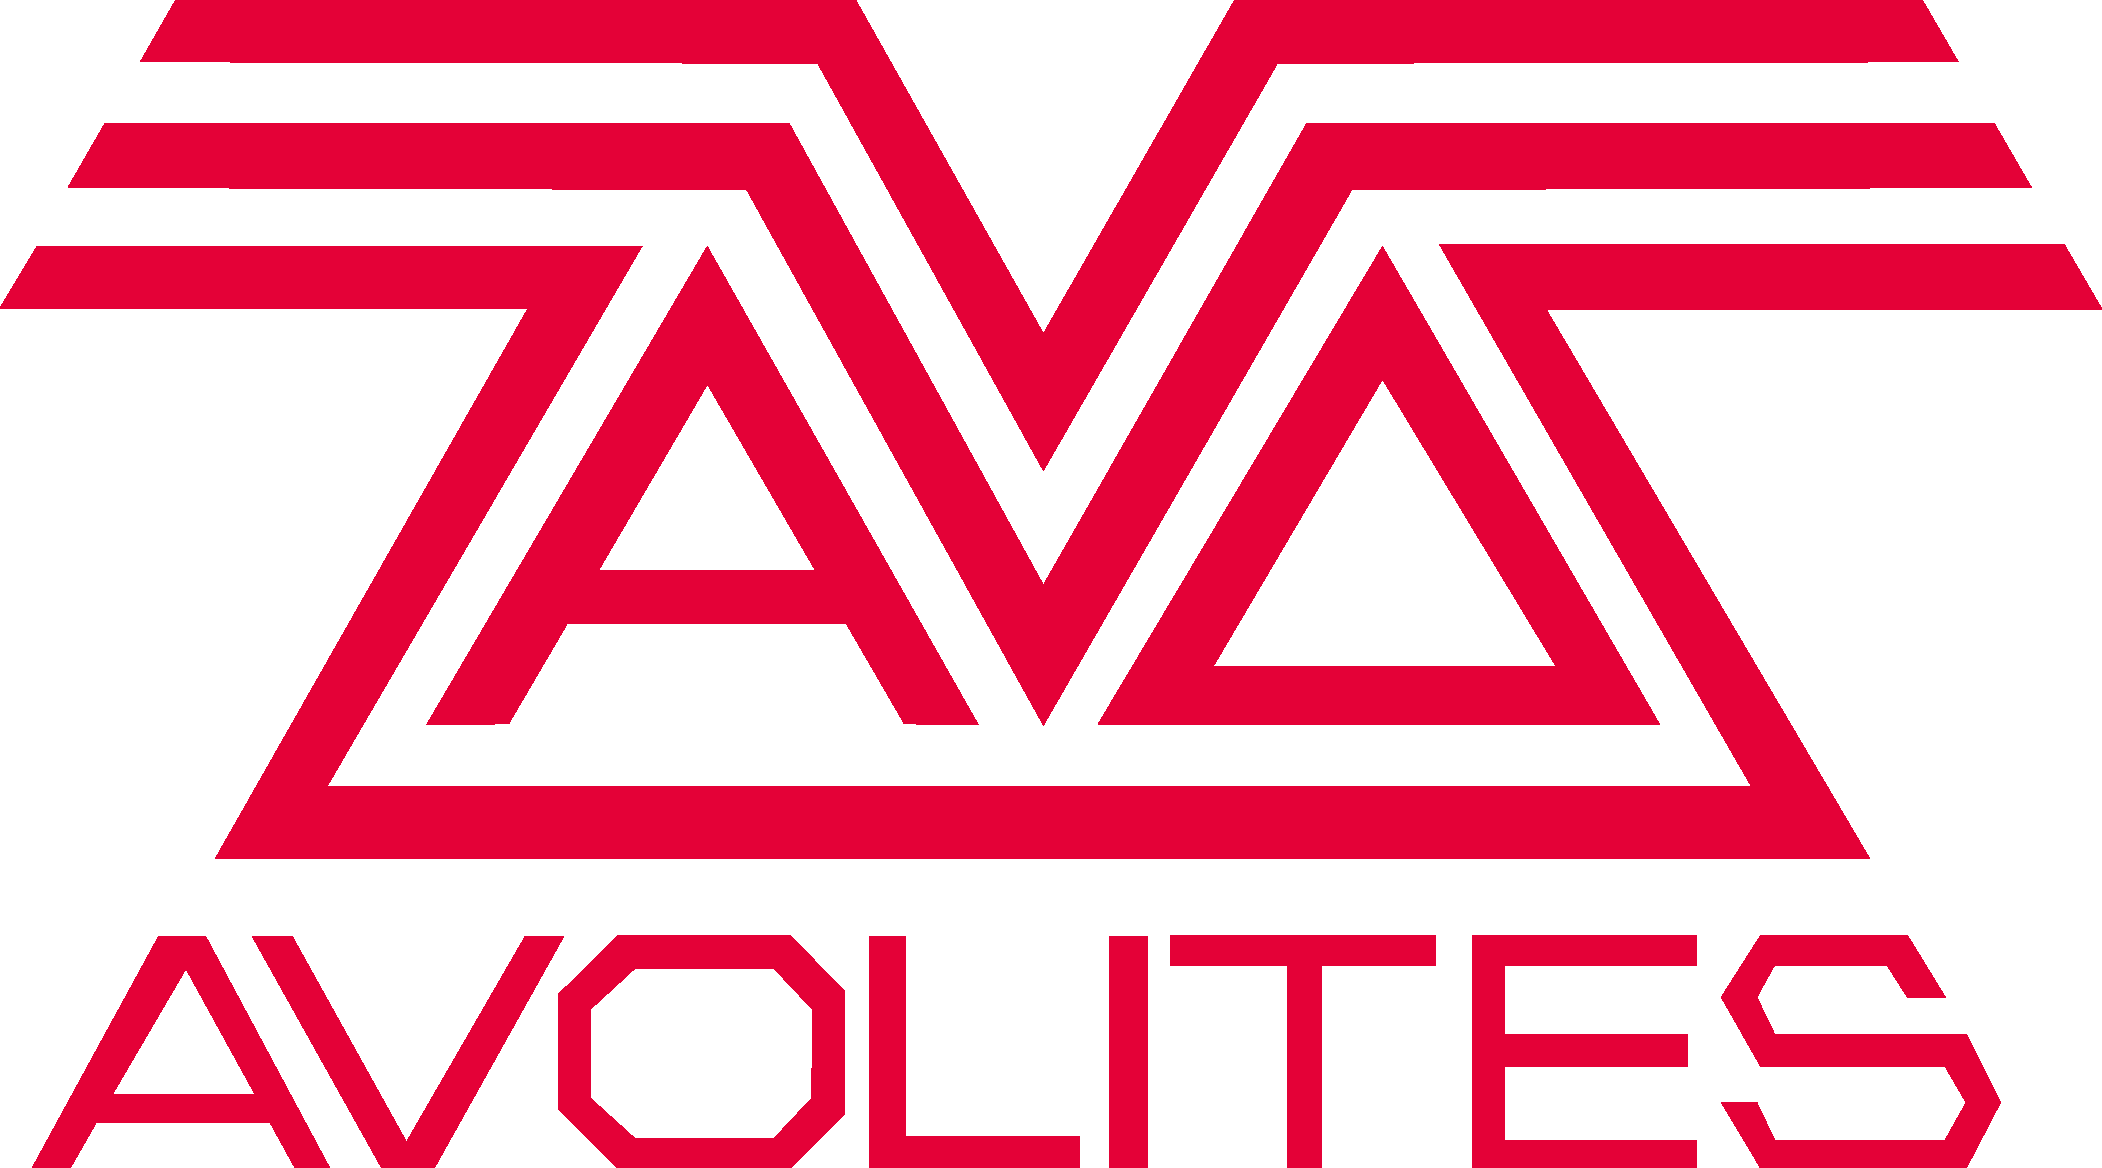 Avolites advance notice to counterfeit resellers at Palm Expo Mumbai proves successful